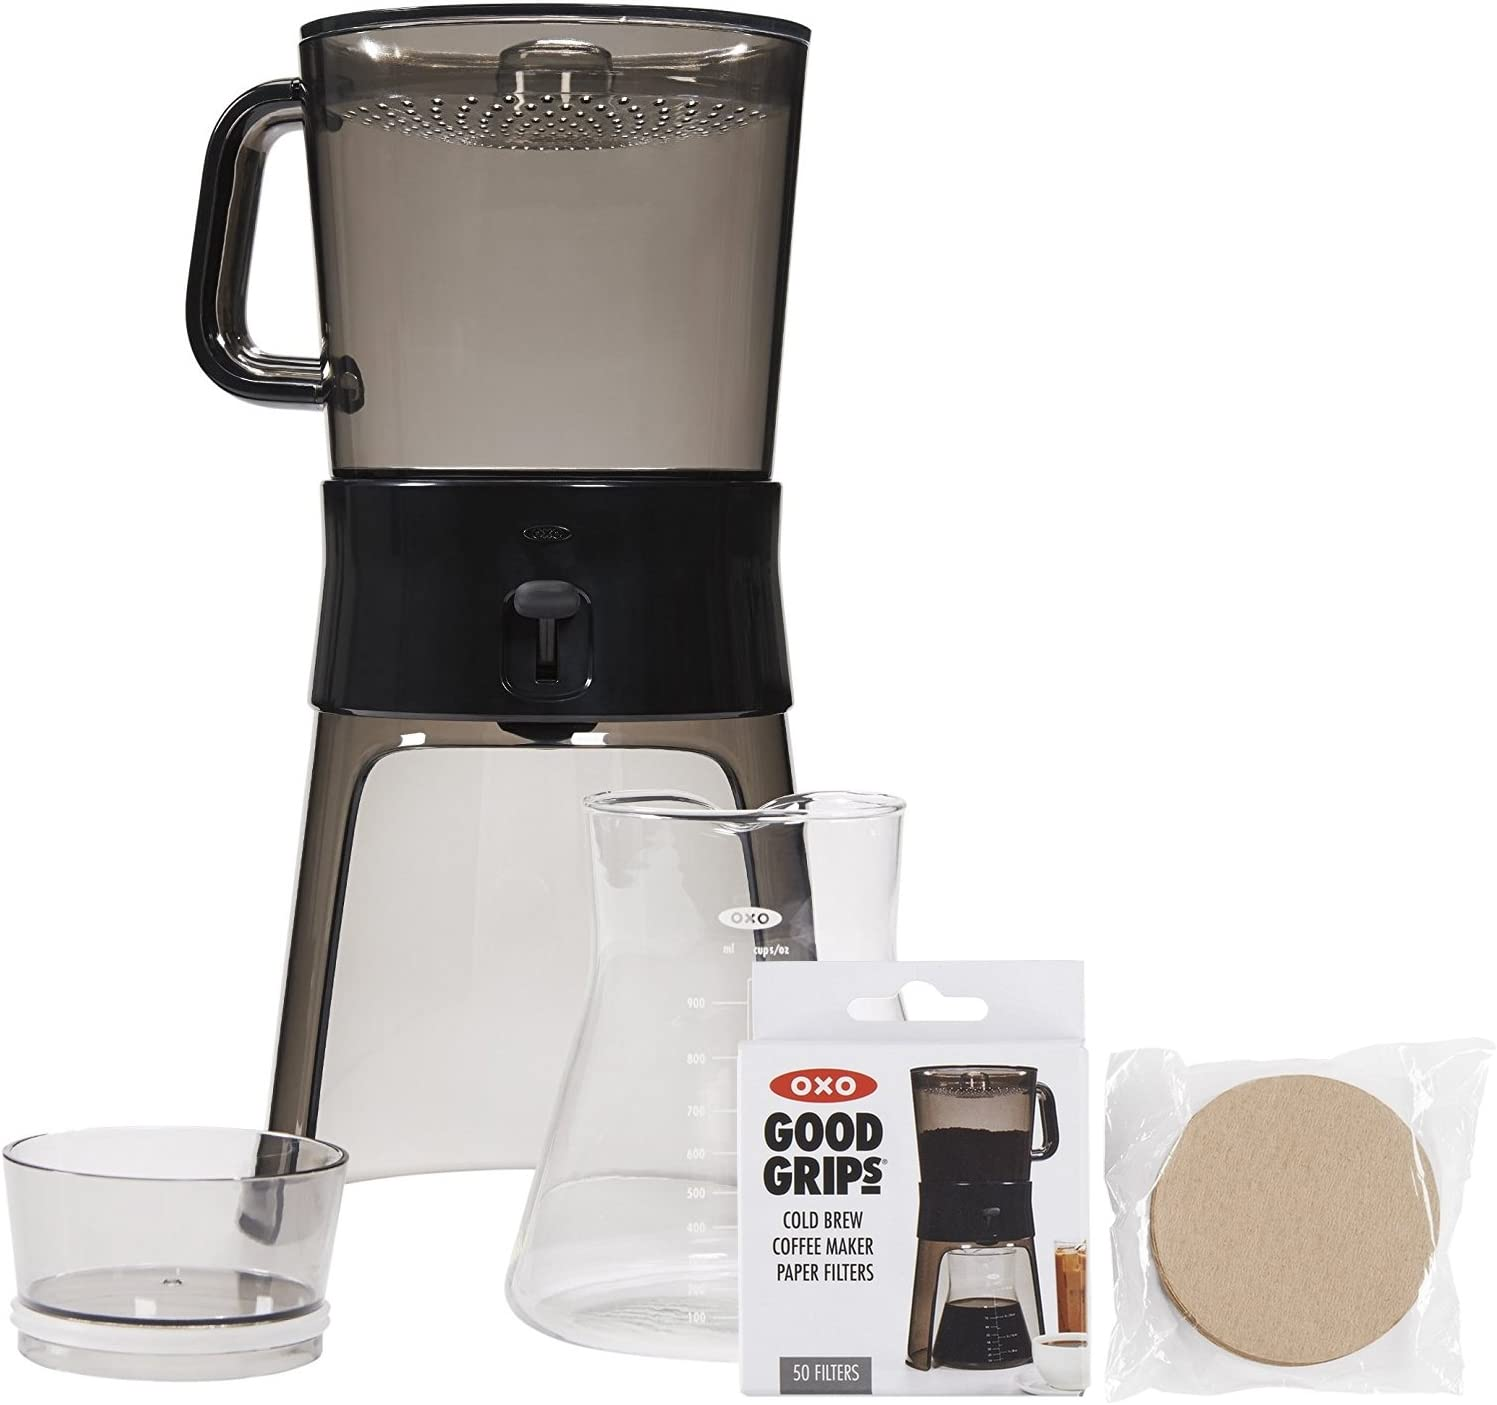 OXO Good Grips Cold Brew Coffee Maker (32 ounces) with 50 Paper Filters